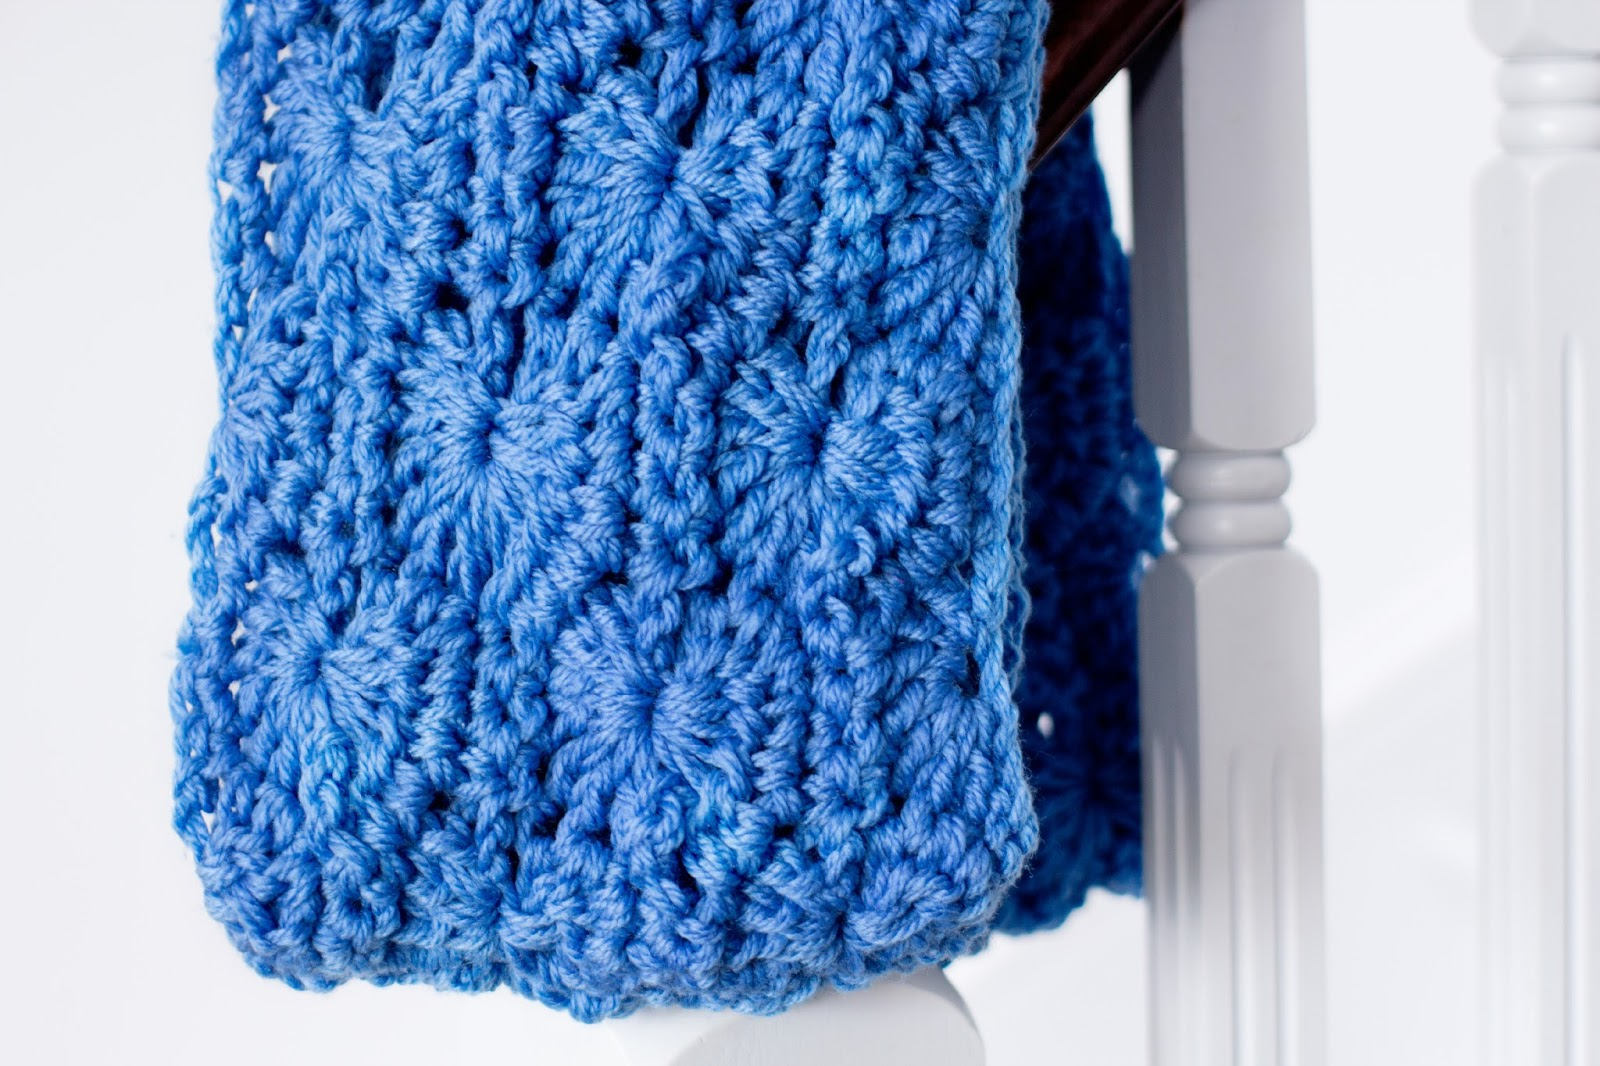 Crochet Patterns Unique : Unique Crochet Scarf Patterns Hopeful honey craft, crochet , create: a ...